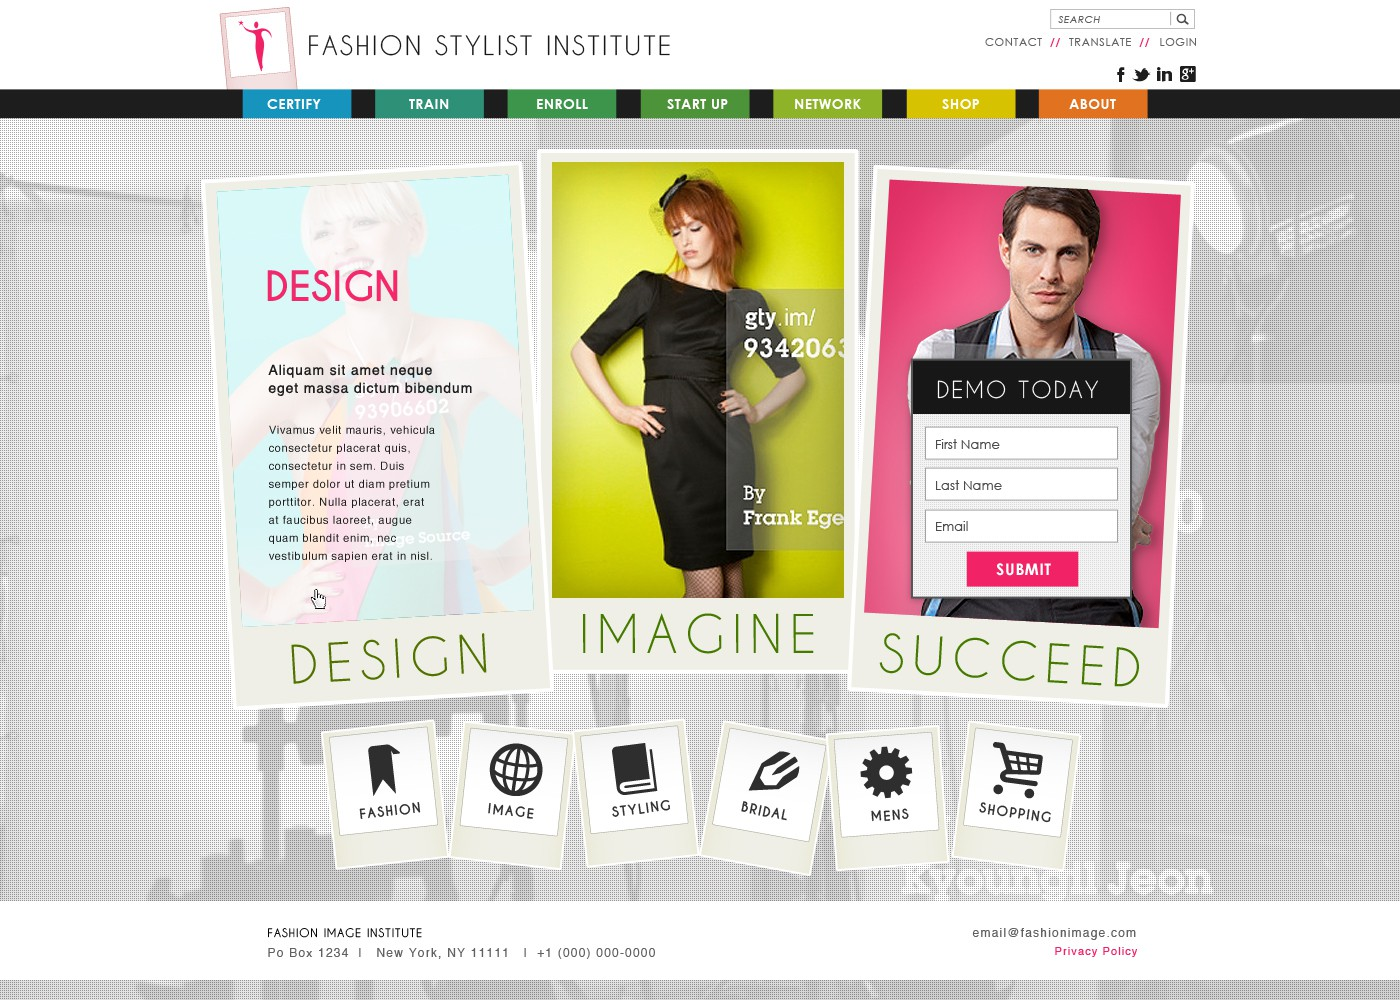 Help Fashion Image Institute with a new website design